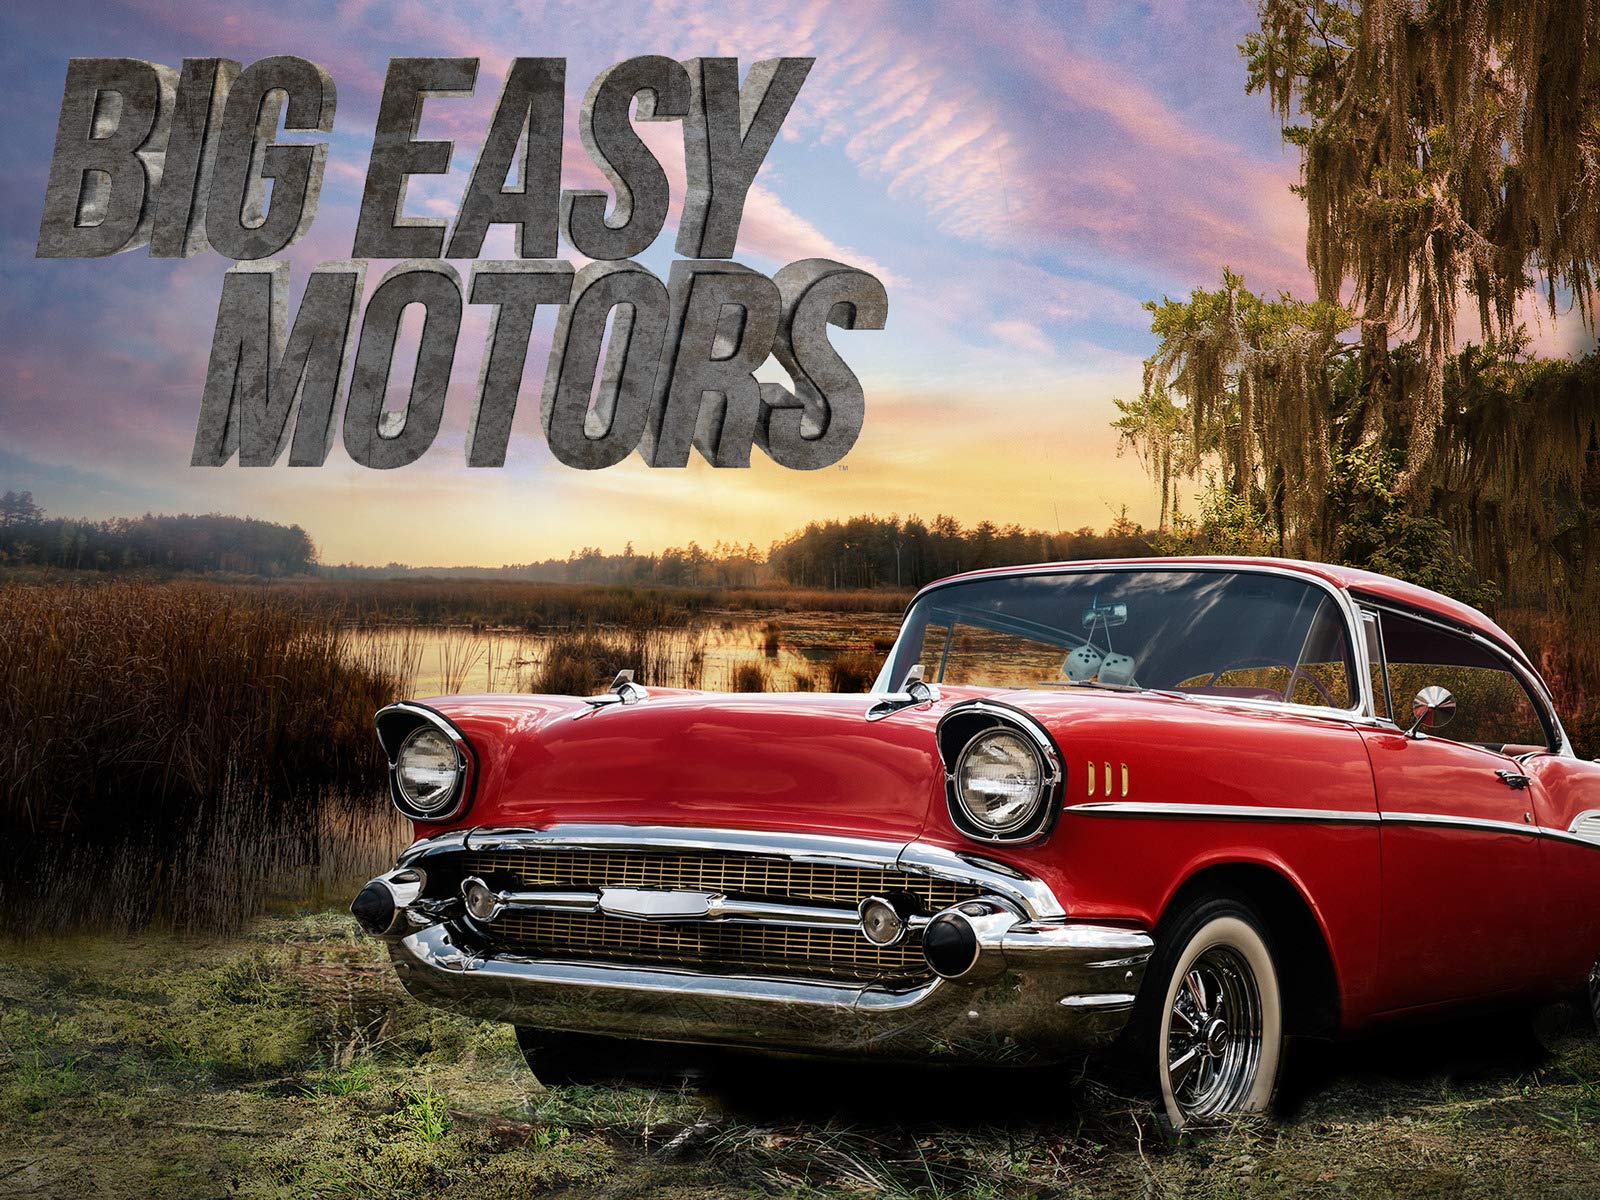 Big Easy Motors - Season 1